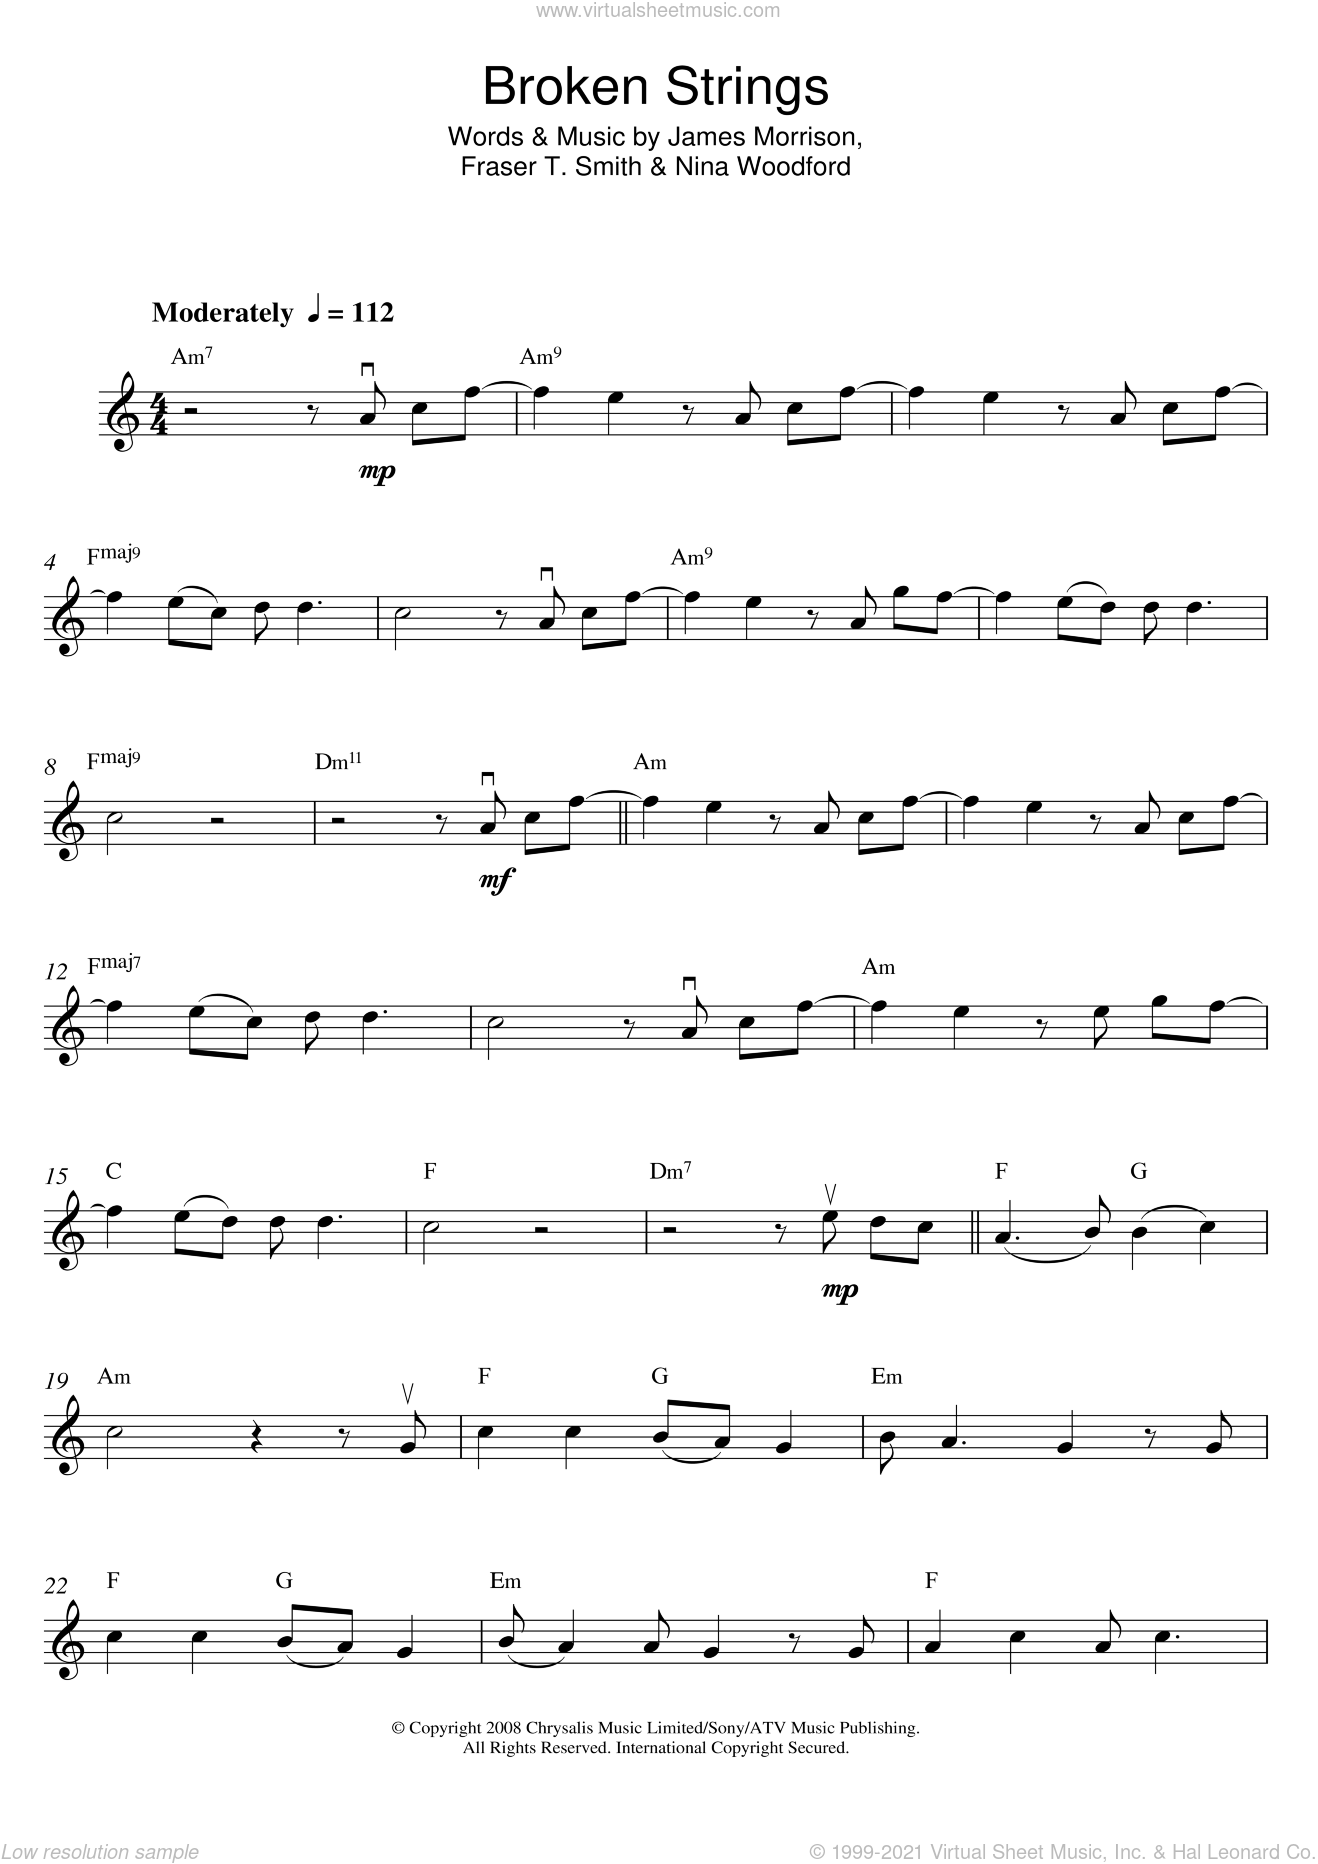 Broken Strings sheet music for violin solo by James Morrison, Fraser T. Smith and Nina Woodford, intermediate skill level